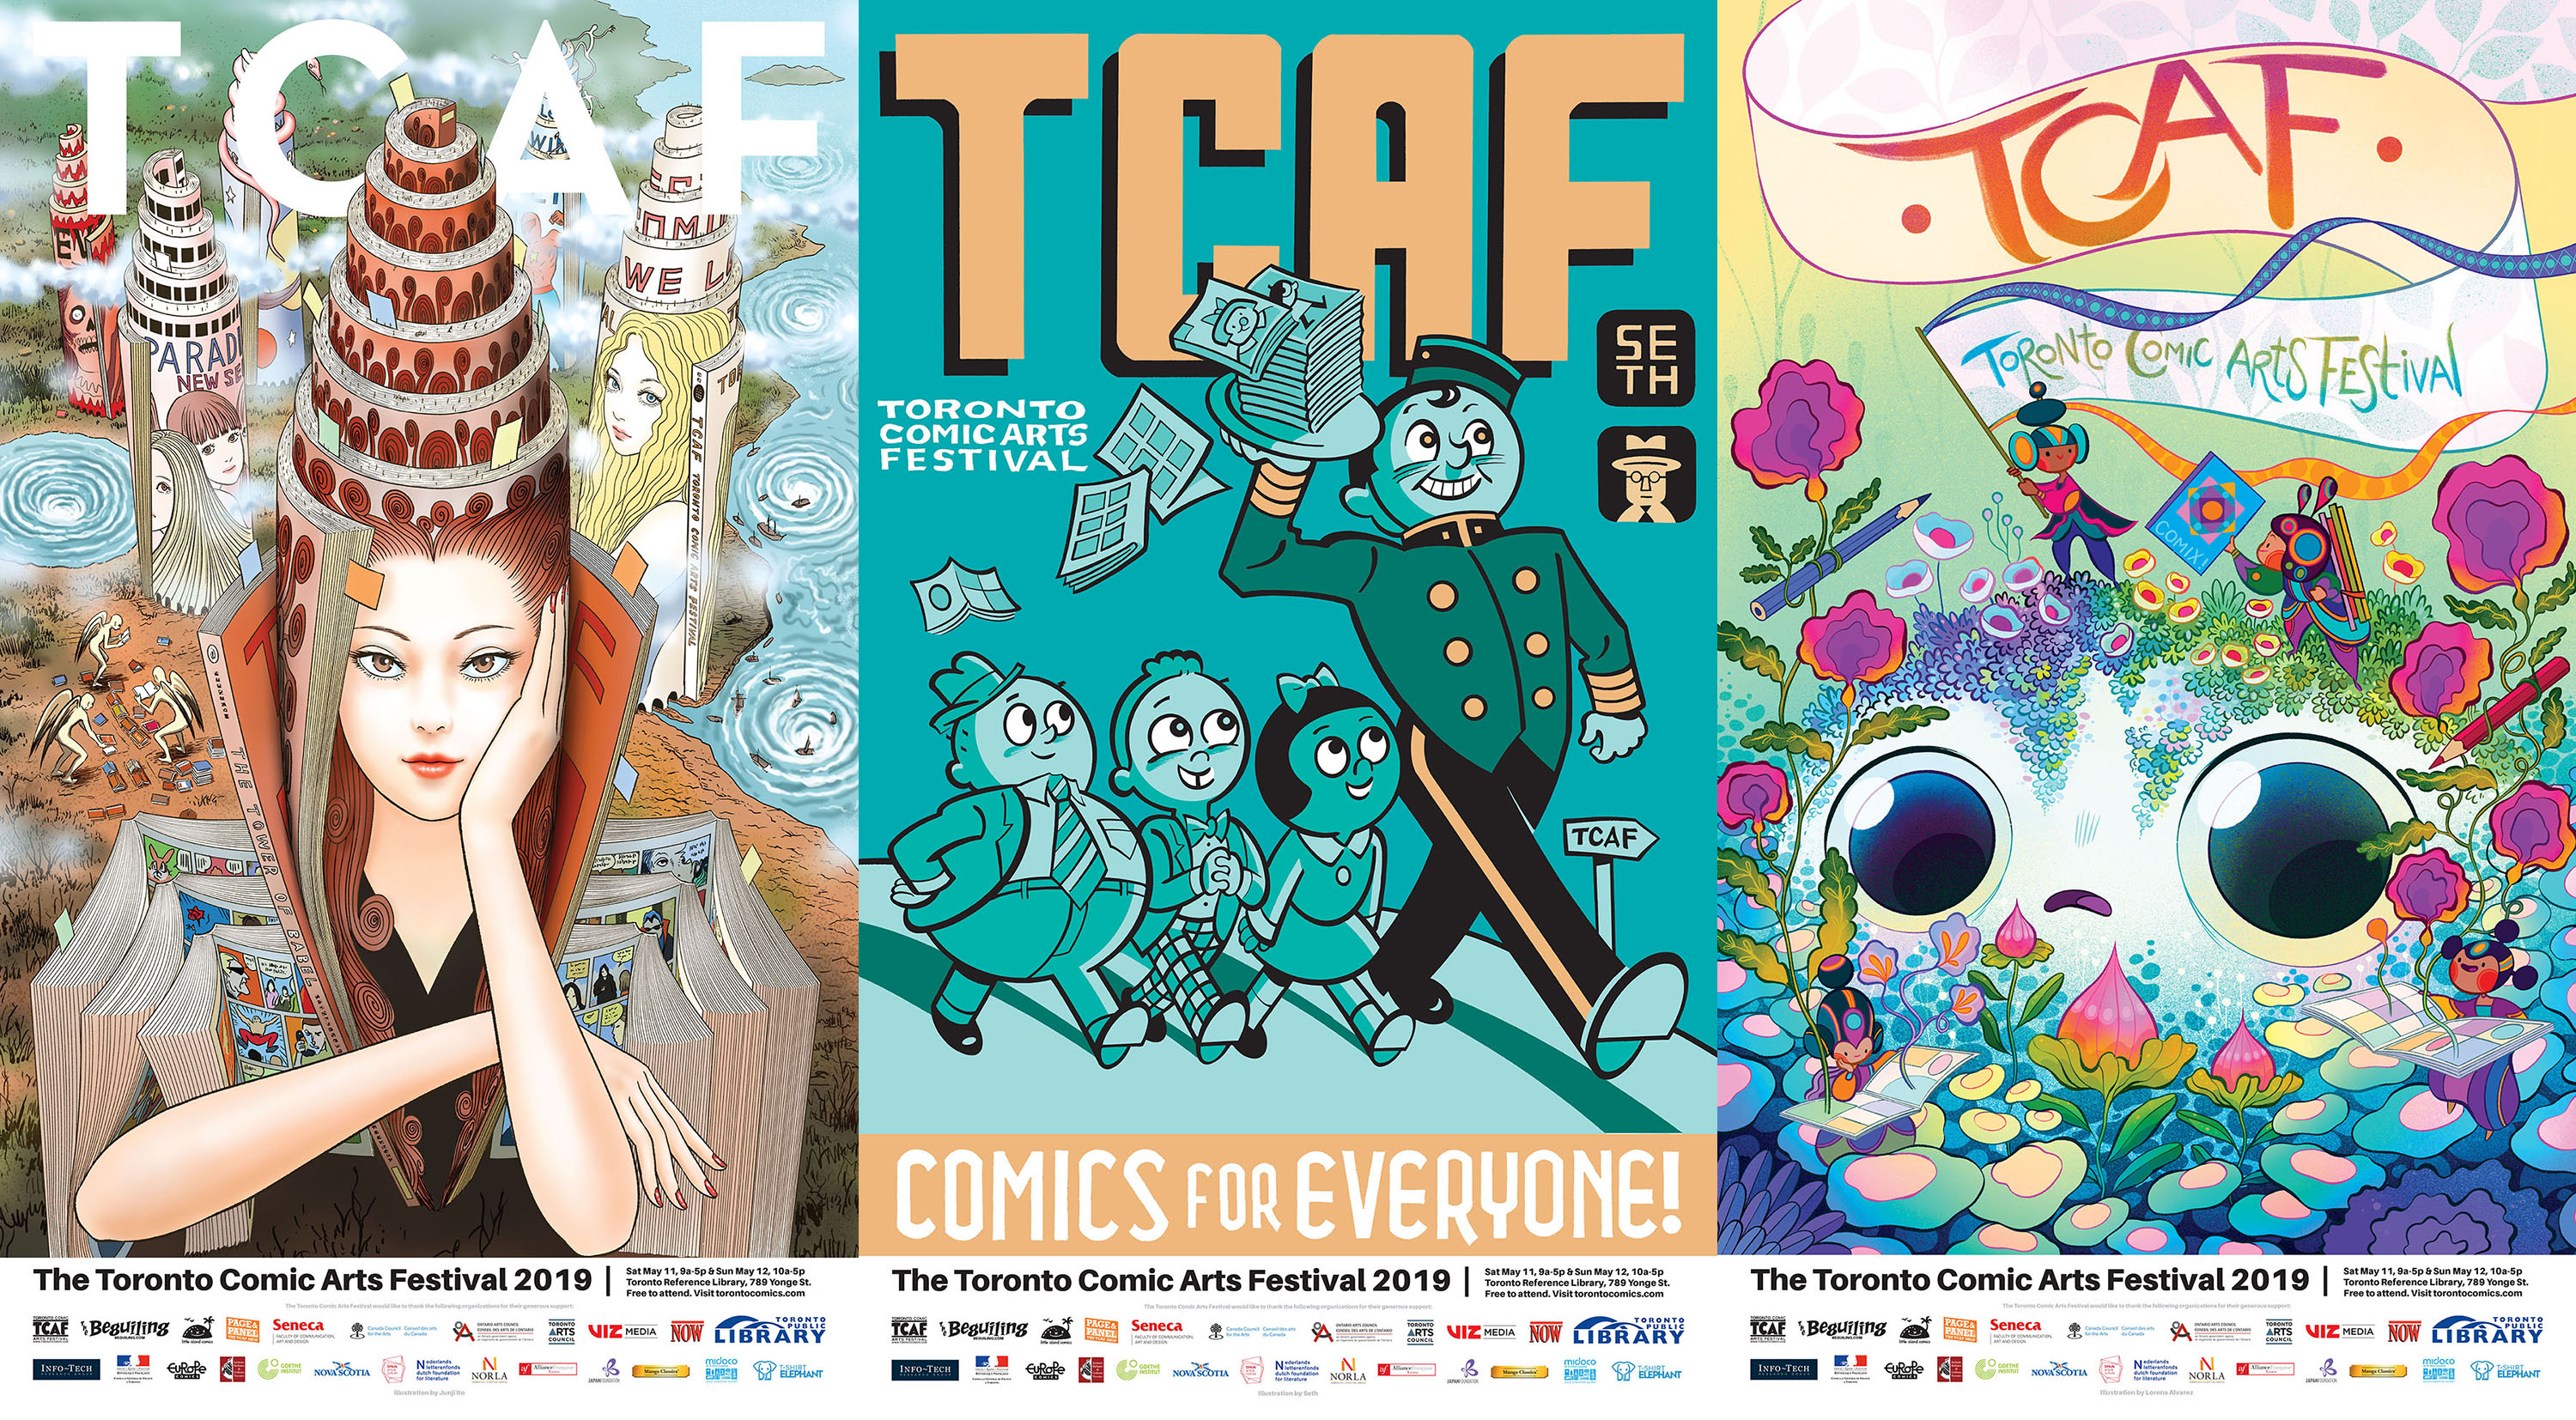 TCAF 2019 Posters (complete set)